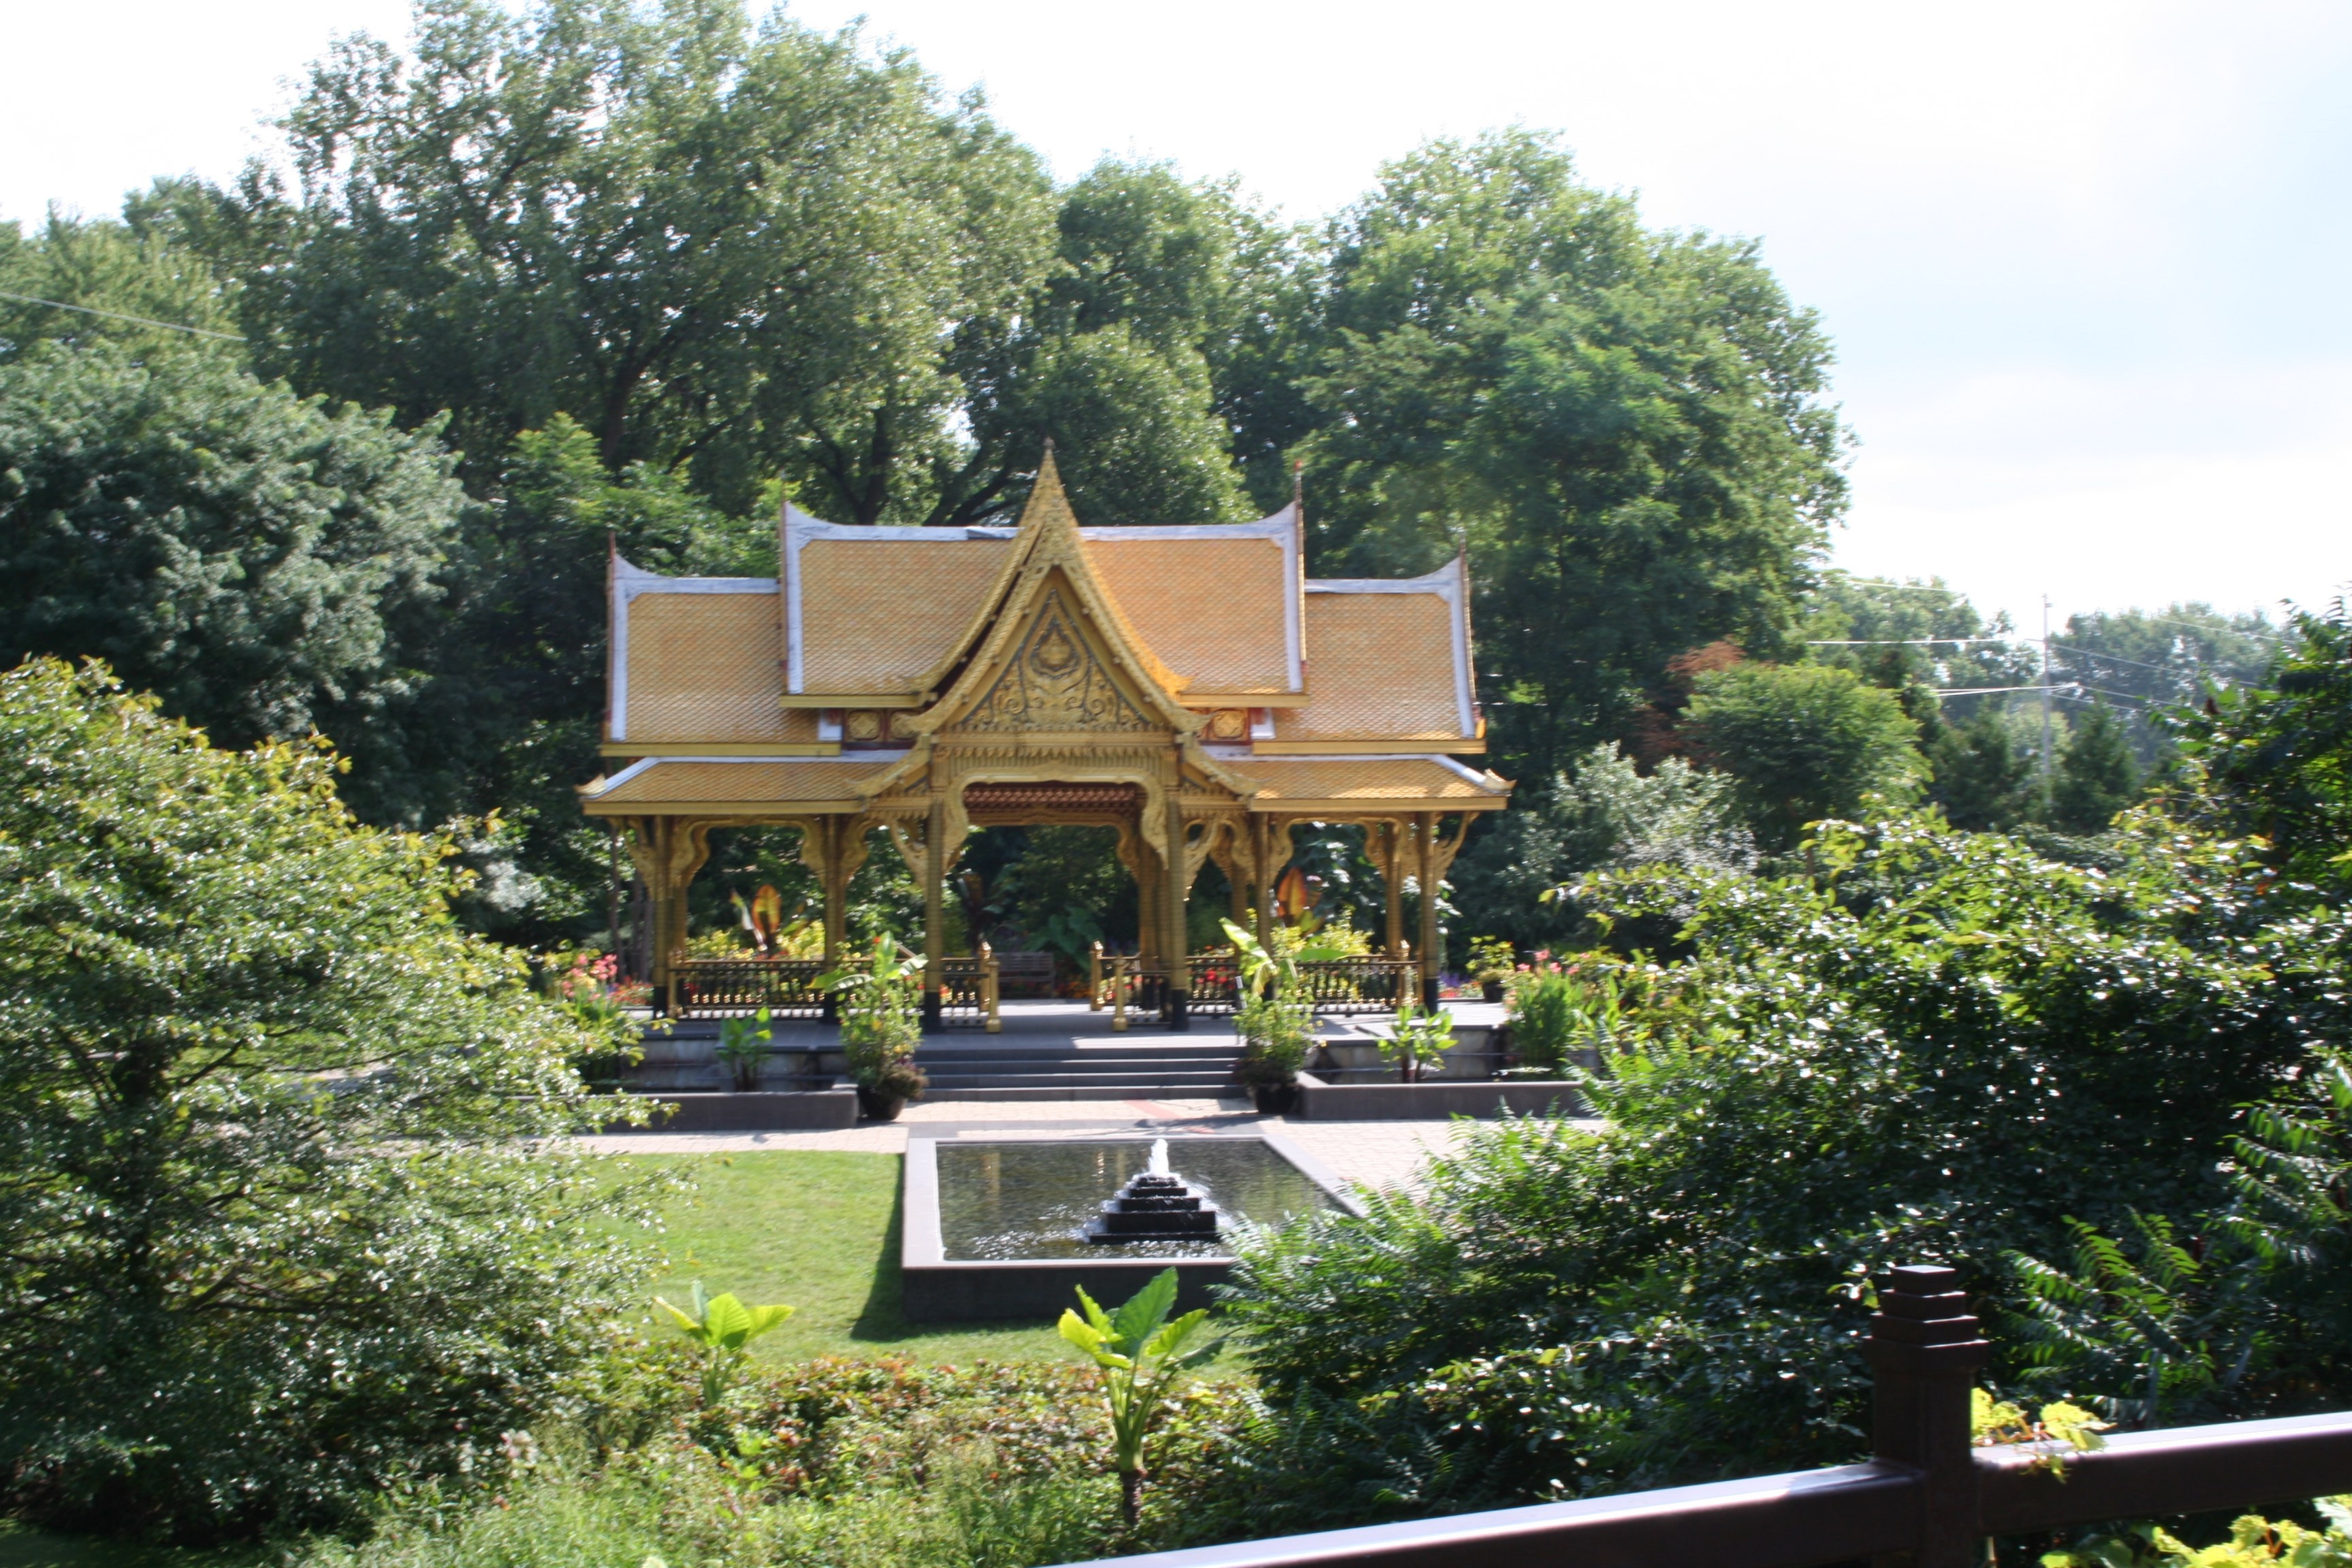 You Approach The Thai Pavilion Over A Bridge, But Get A Glimpse Of It  Through The Trees.